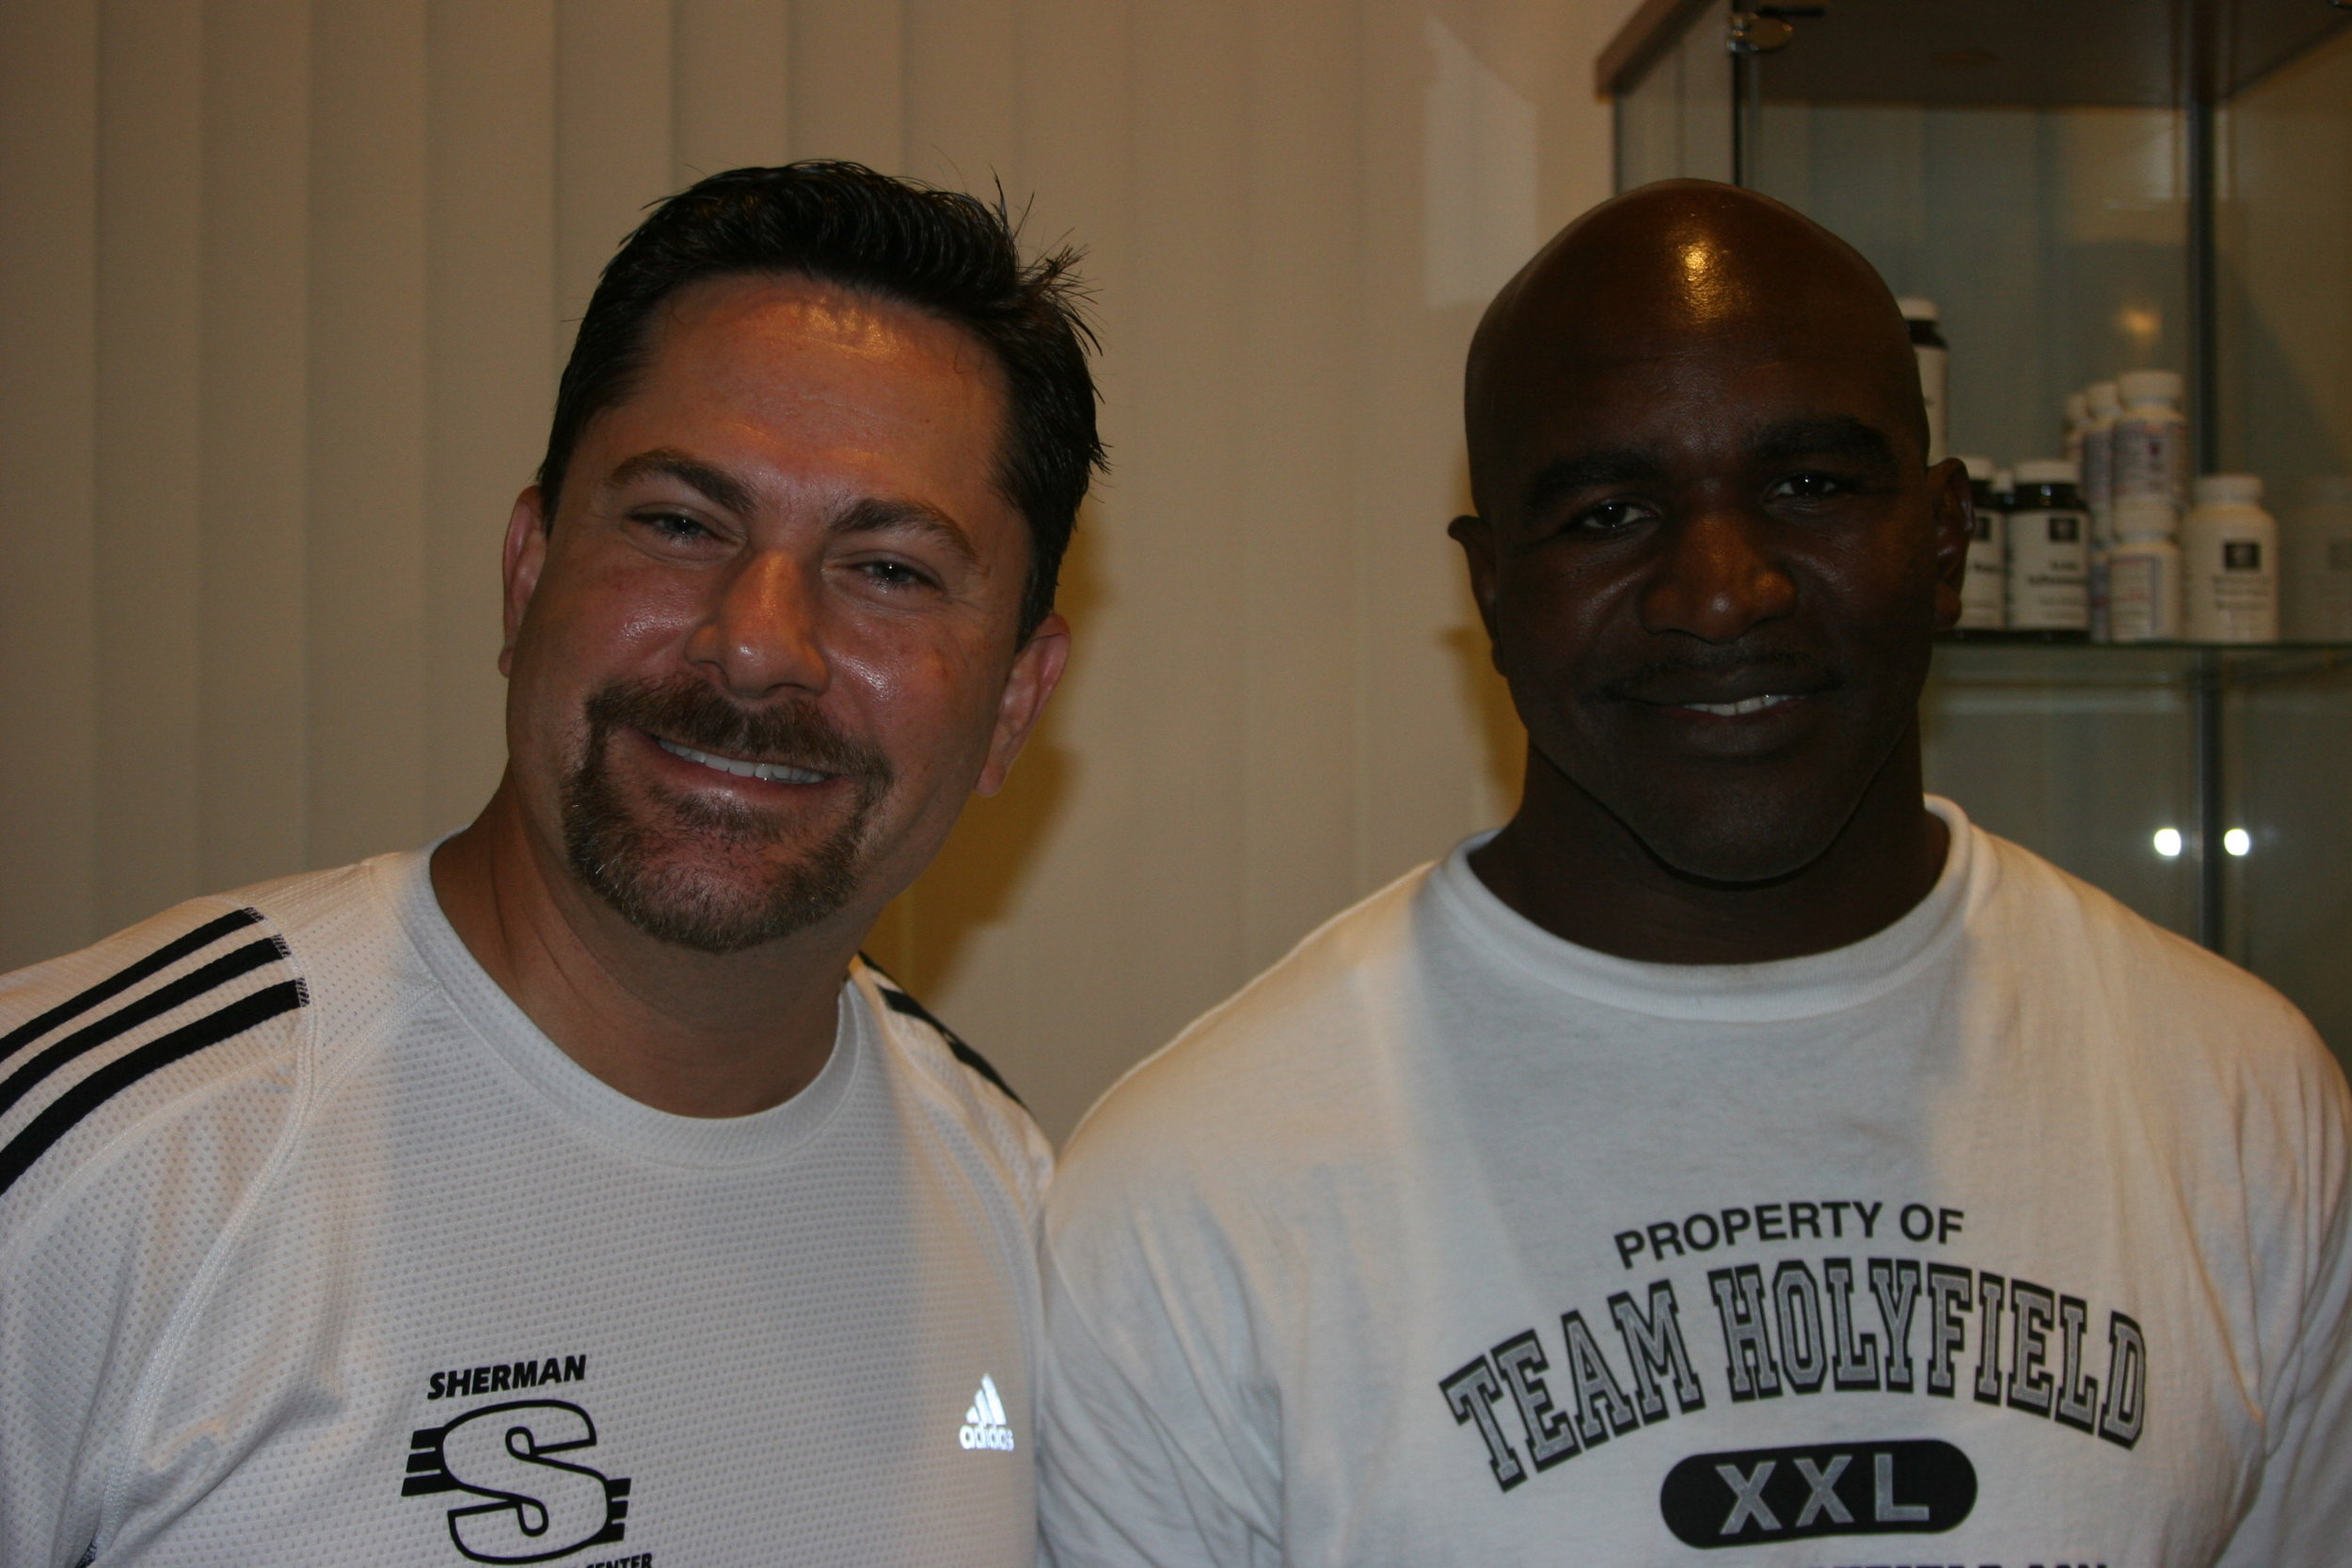 Evander Holyfield, World Heavy Boxing Champion